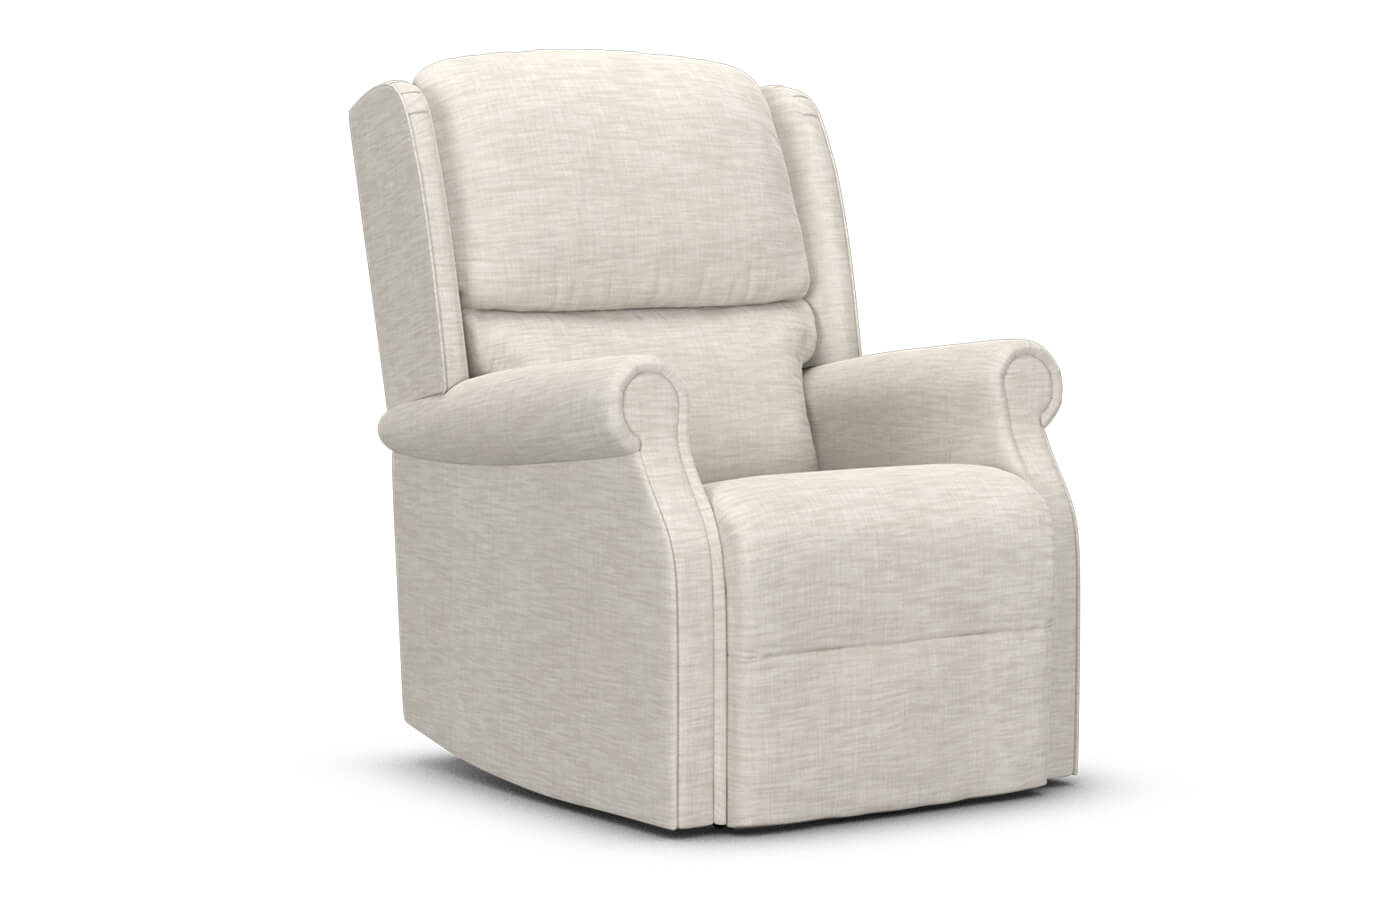 Burrows Riser Recliner Sale